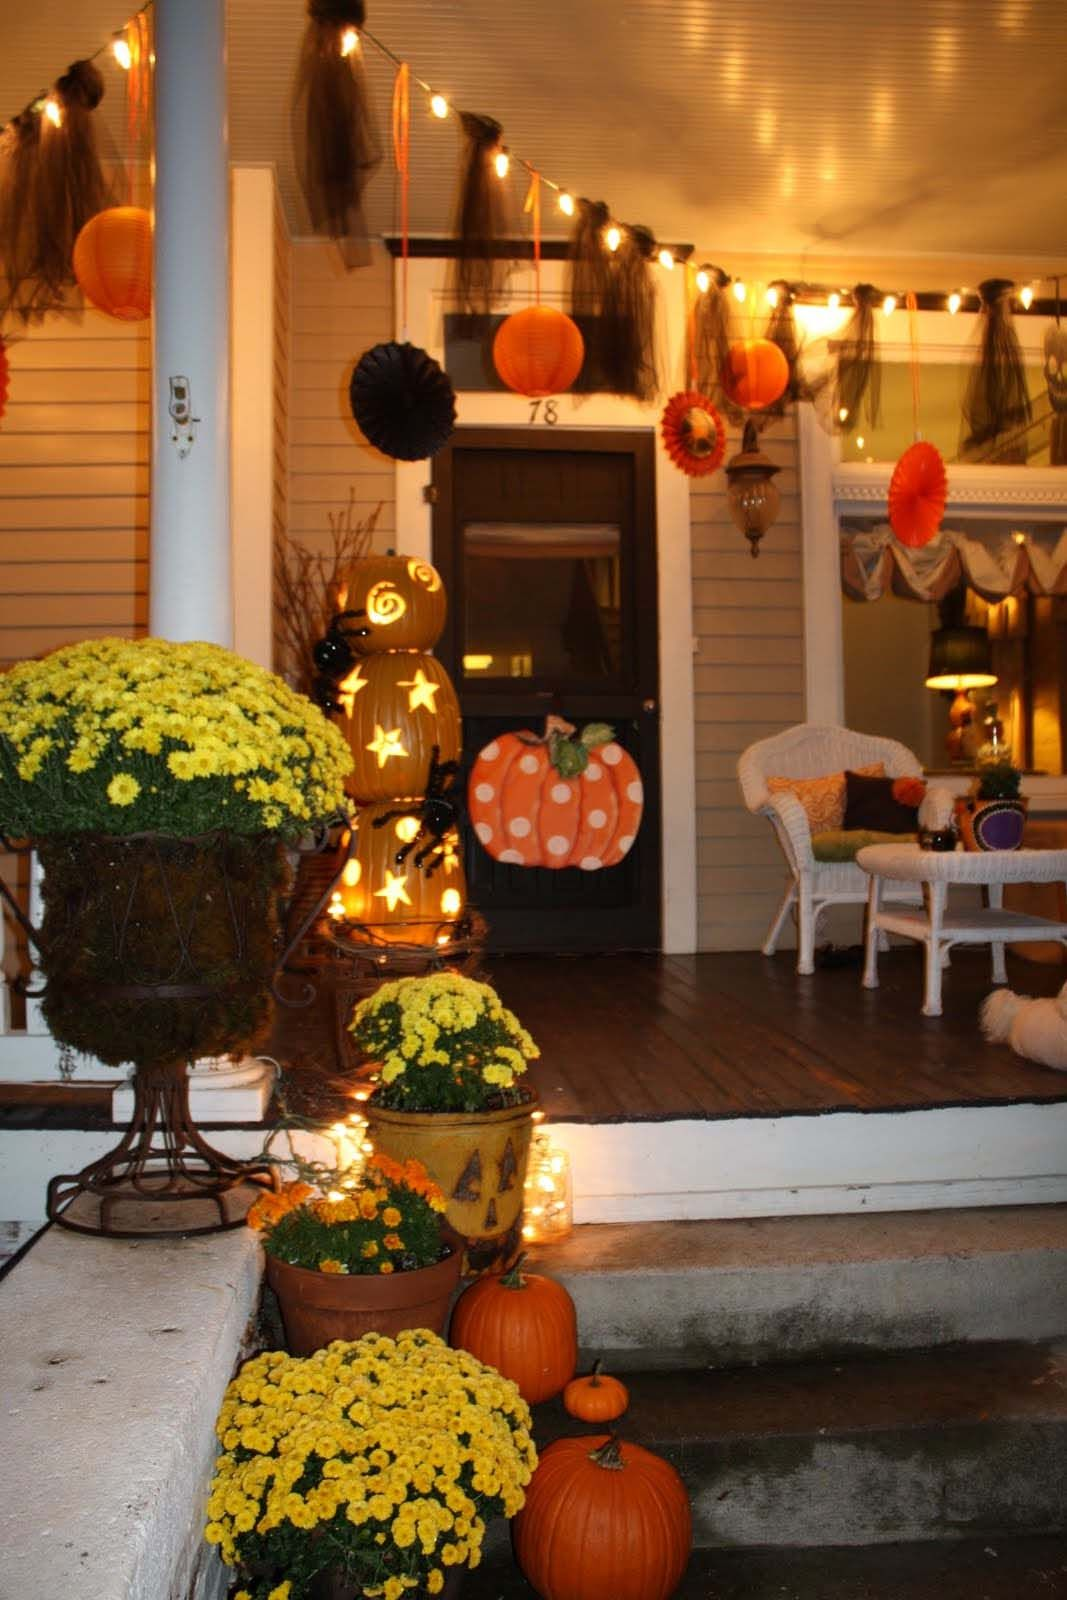 46 of the Coziest Ways to Decorate your Outdoor Spaces for